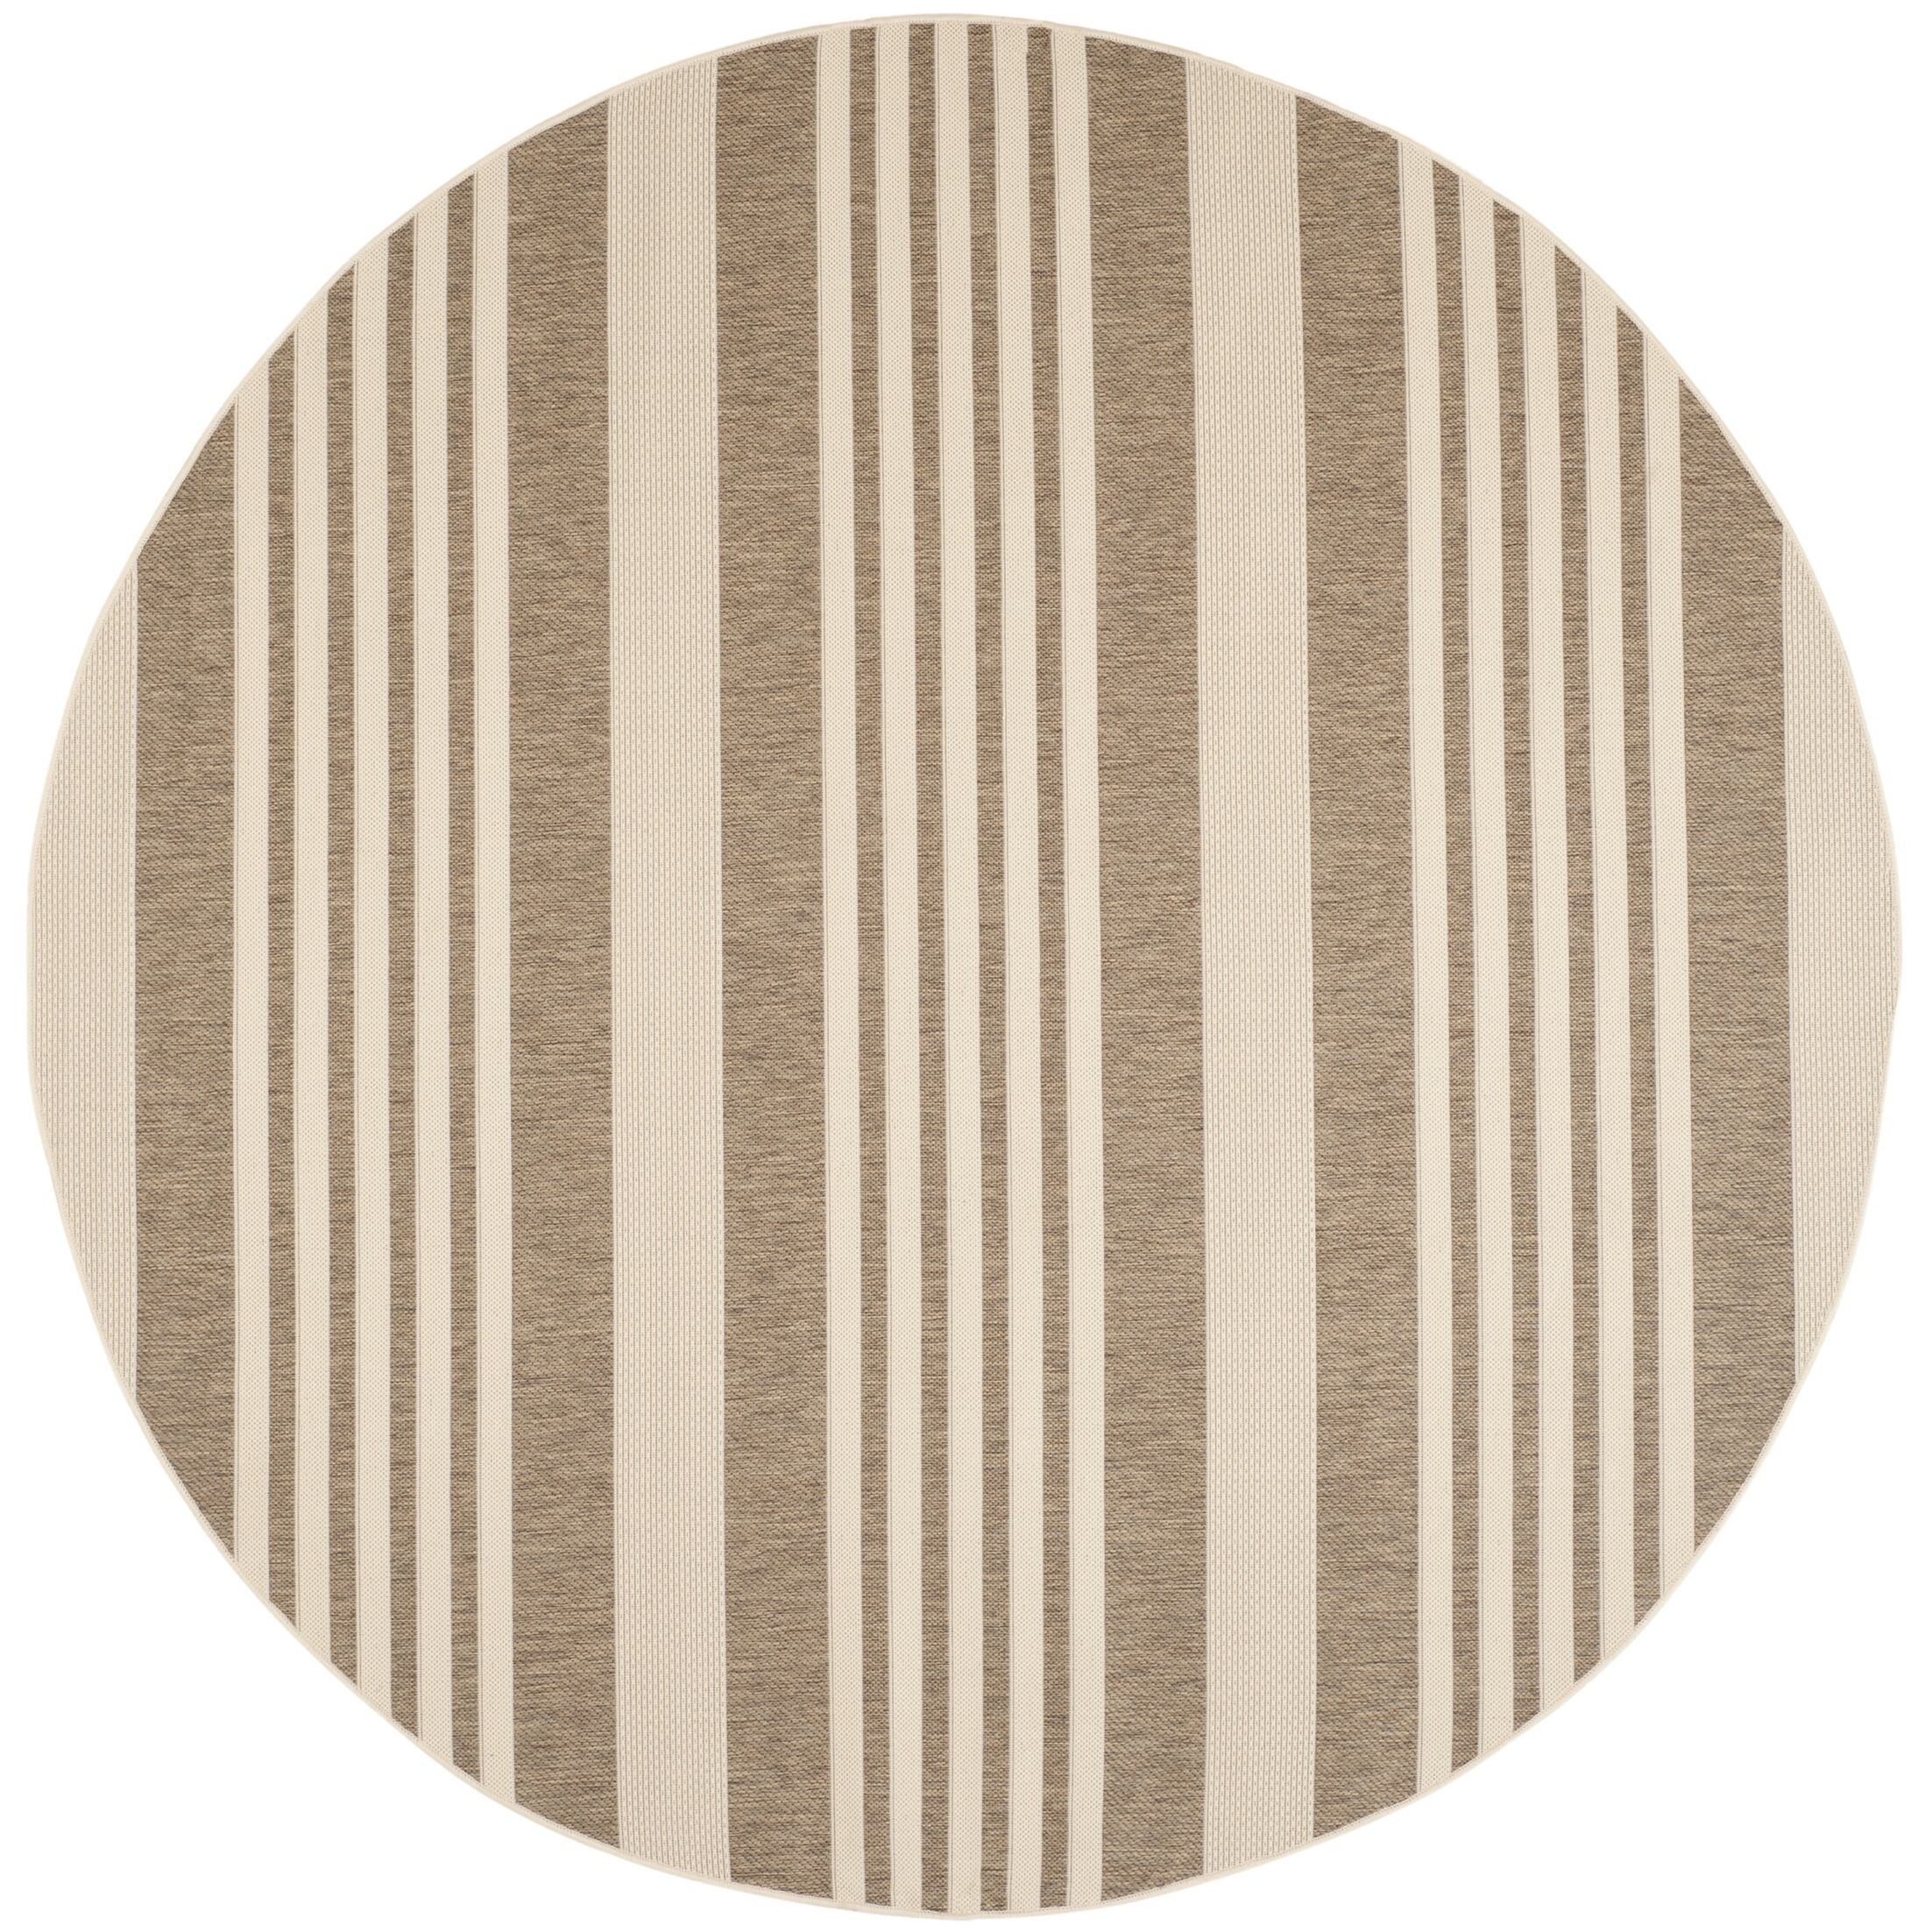 Burwinda Brown & Bone Outdoor Area Rug Rug Size: Rectangle 5'3